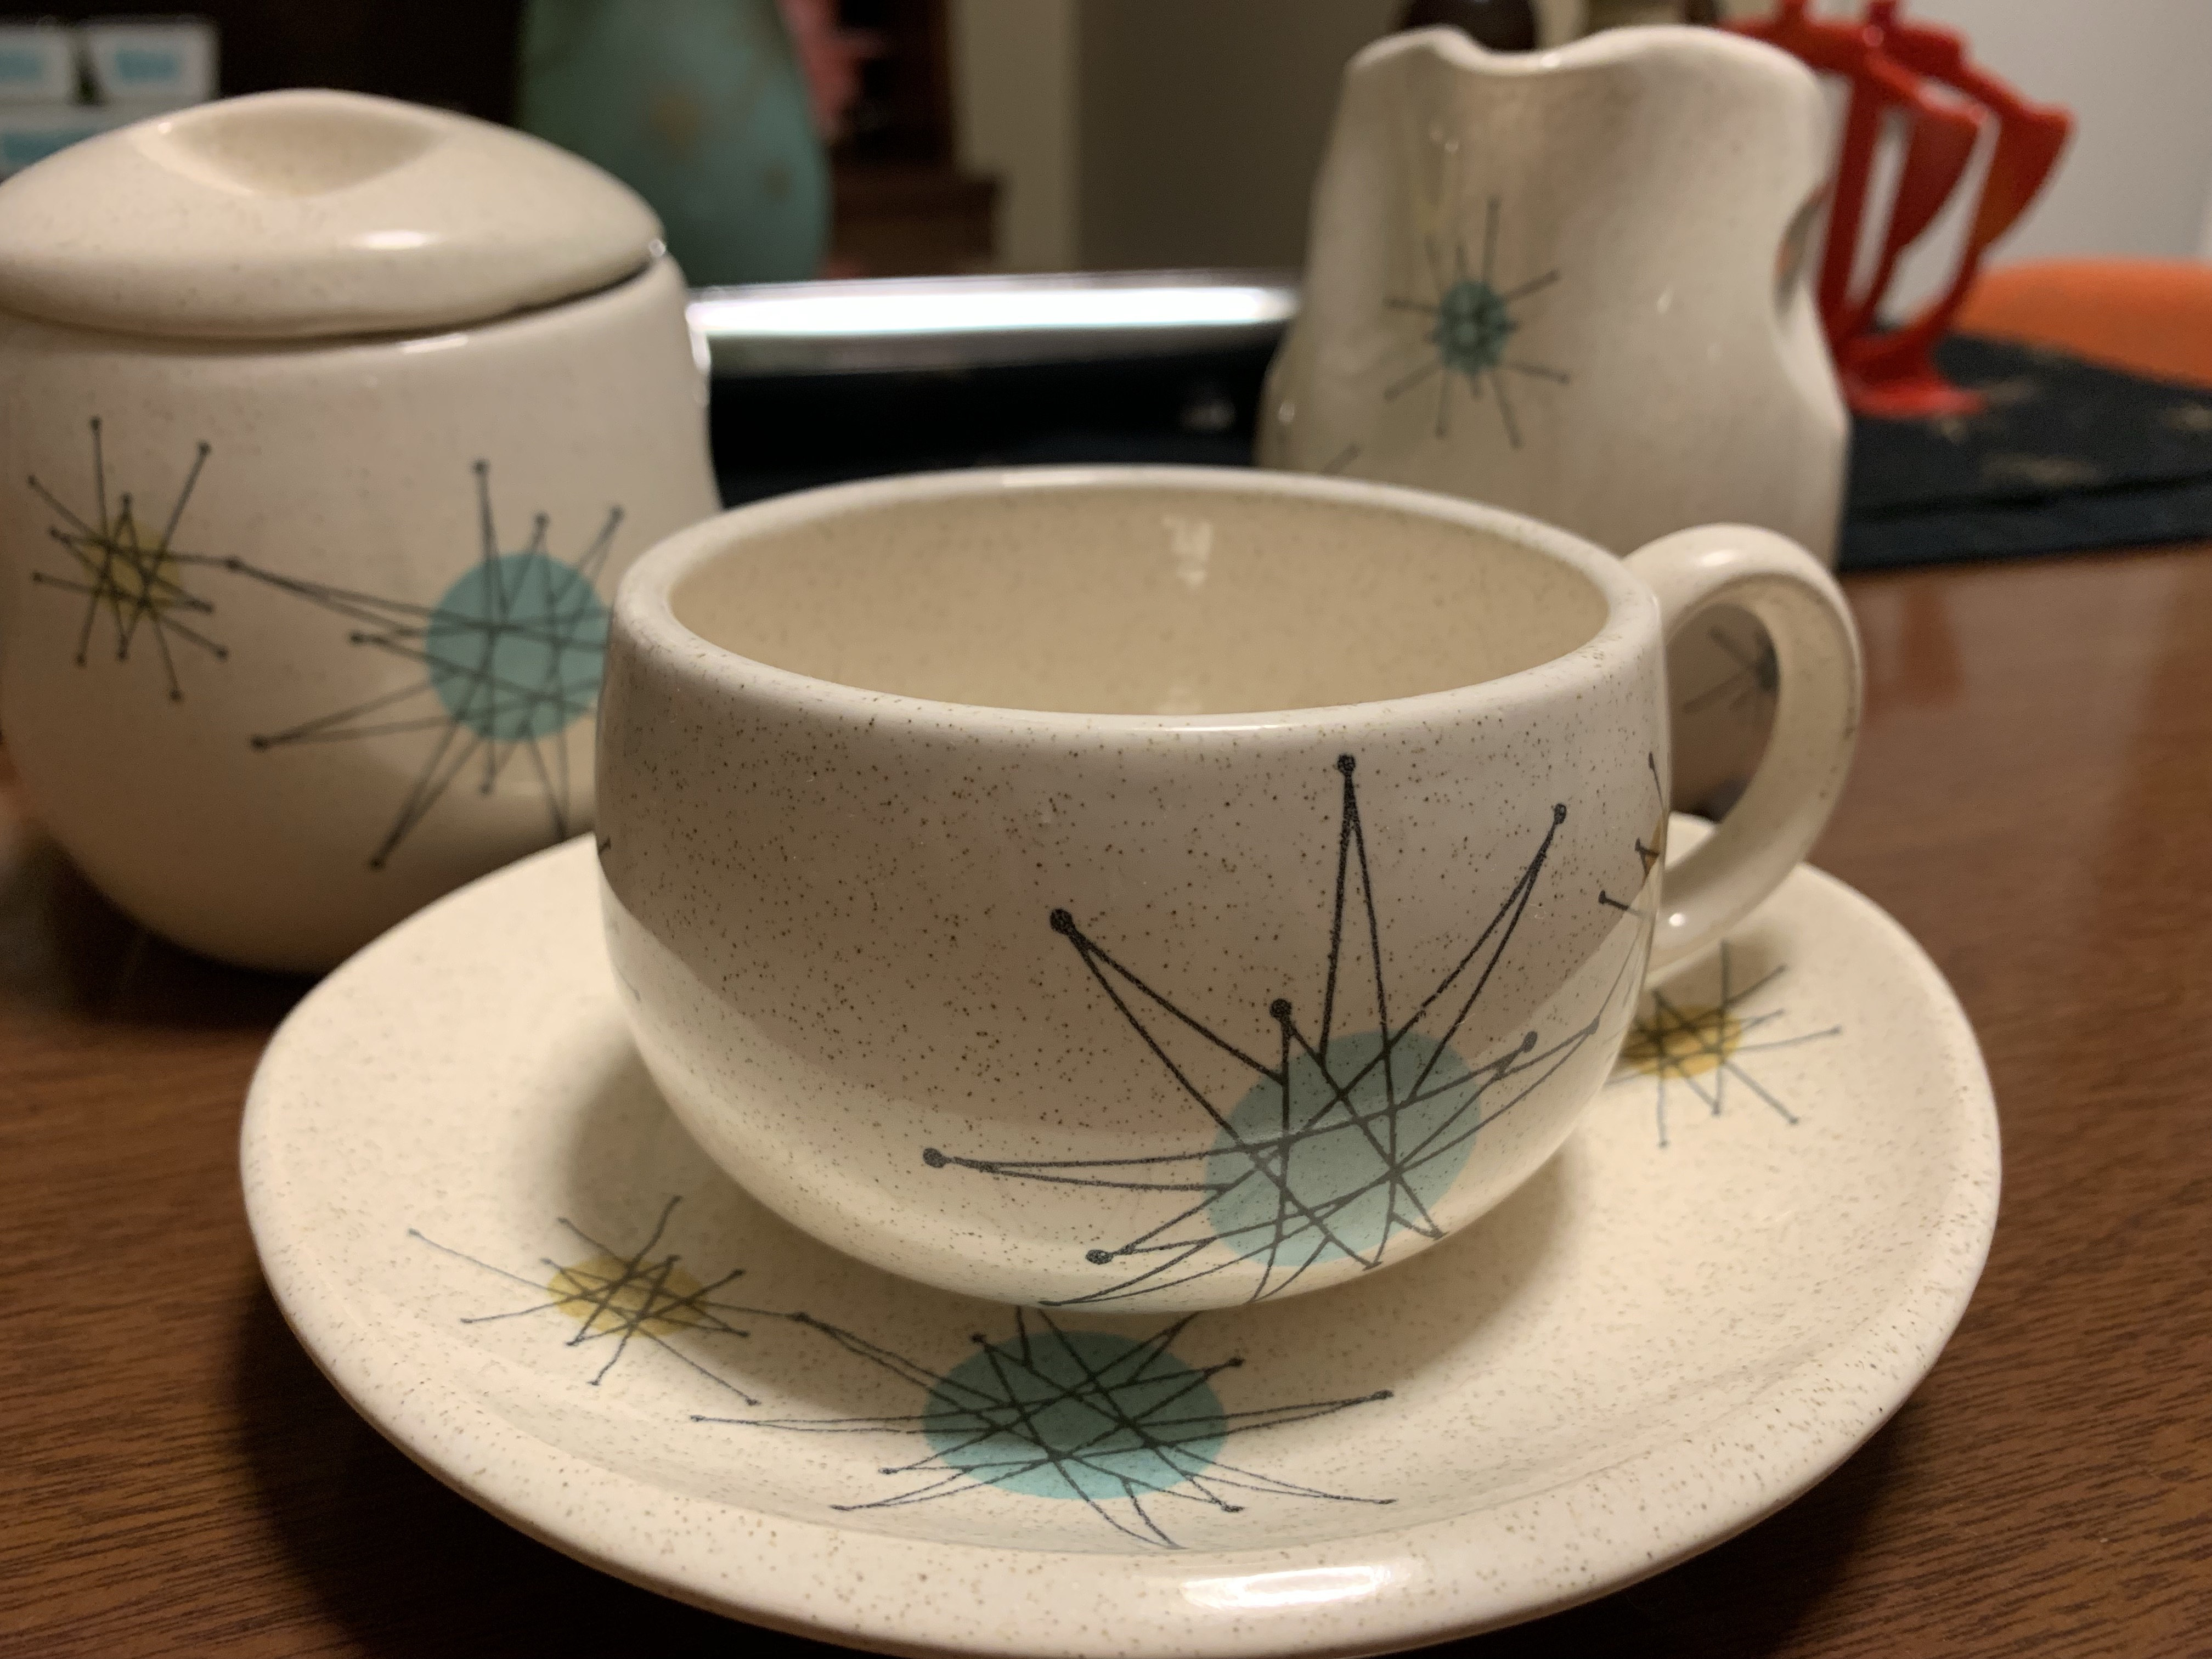 White cup and sauce with blue and black starburst pattern.